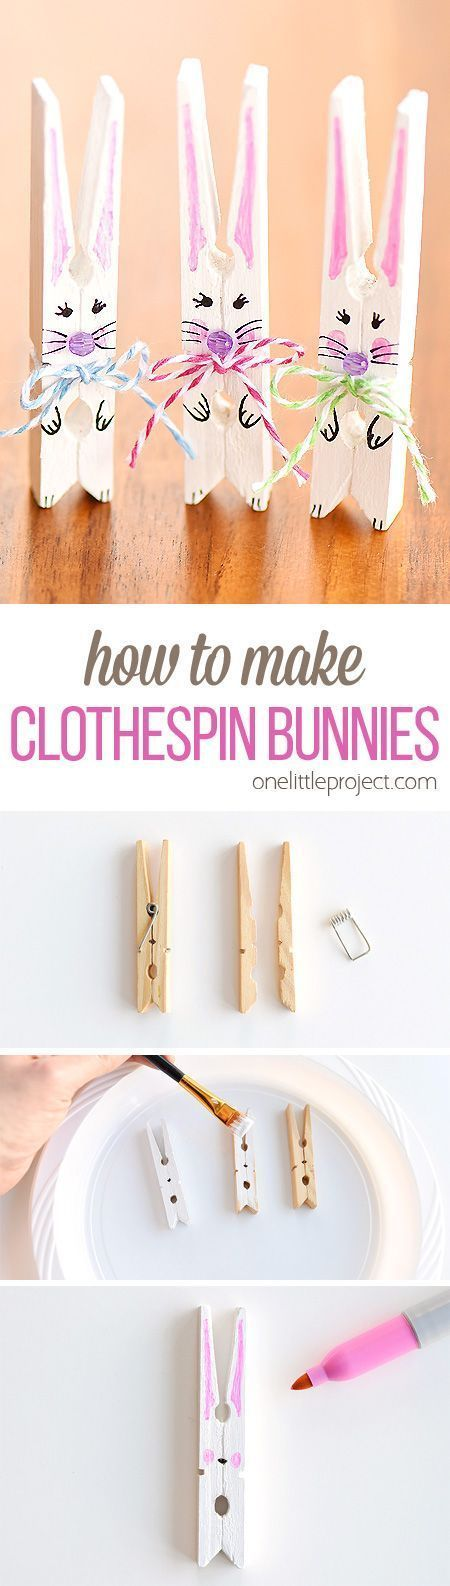 These clothespin bunnies are so adorable and they're really simple to make! They're a great little Easter decoration and a super cute Easter craft to make with the kids. Such a fun and easy spring craft idea!